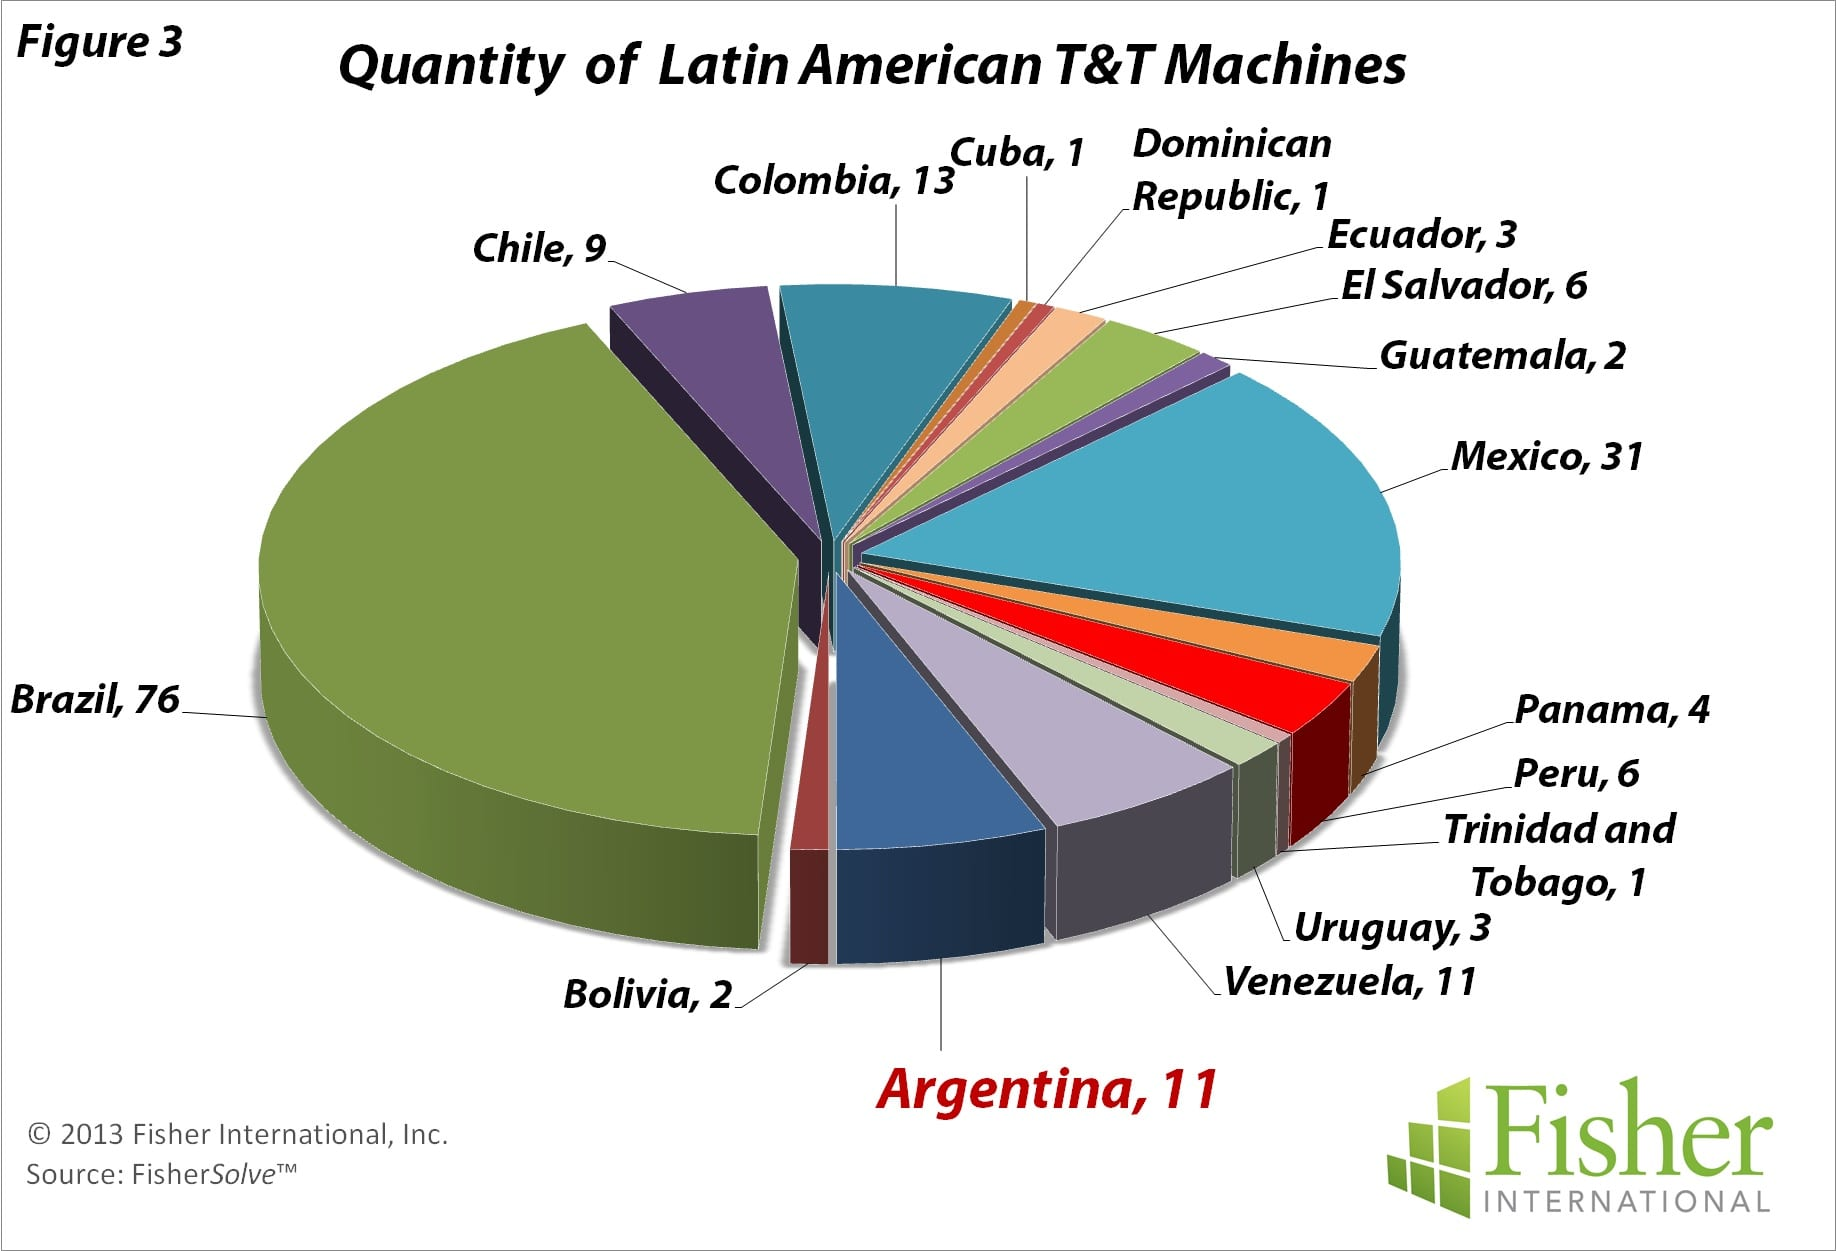 Argentina: modest, locally focused T&T business